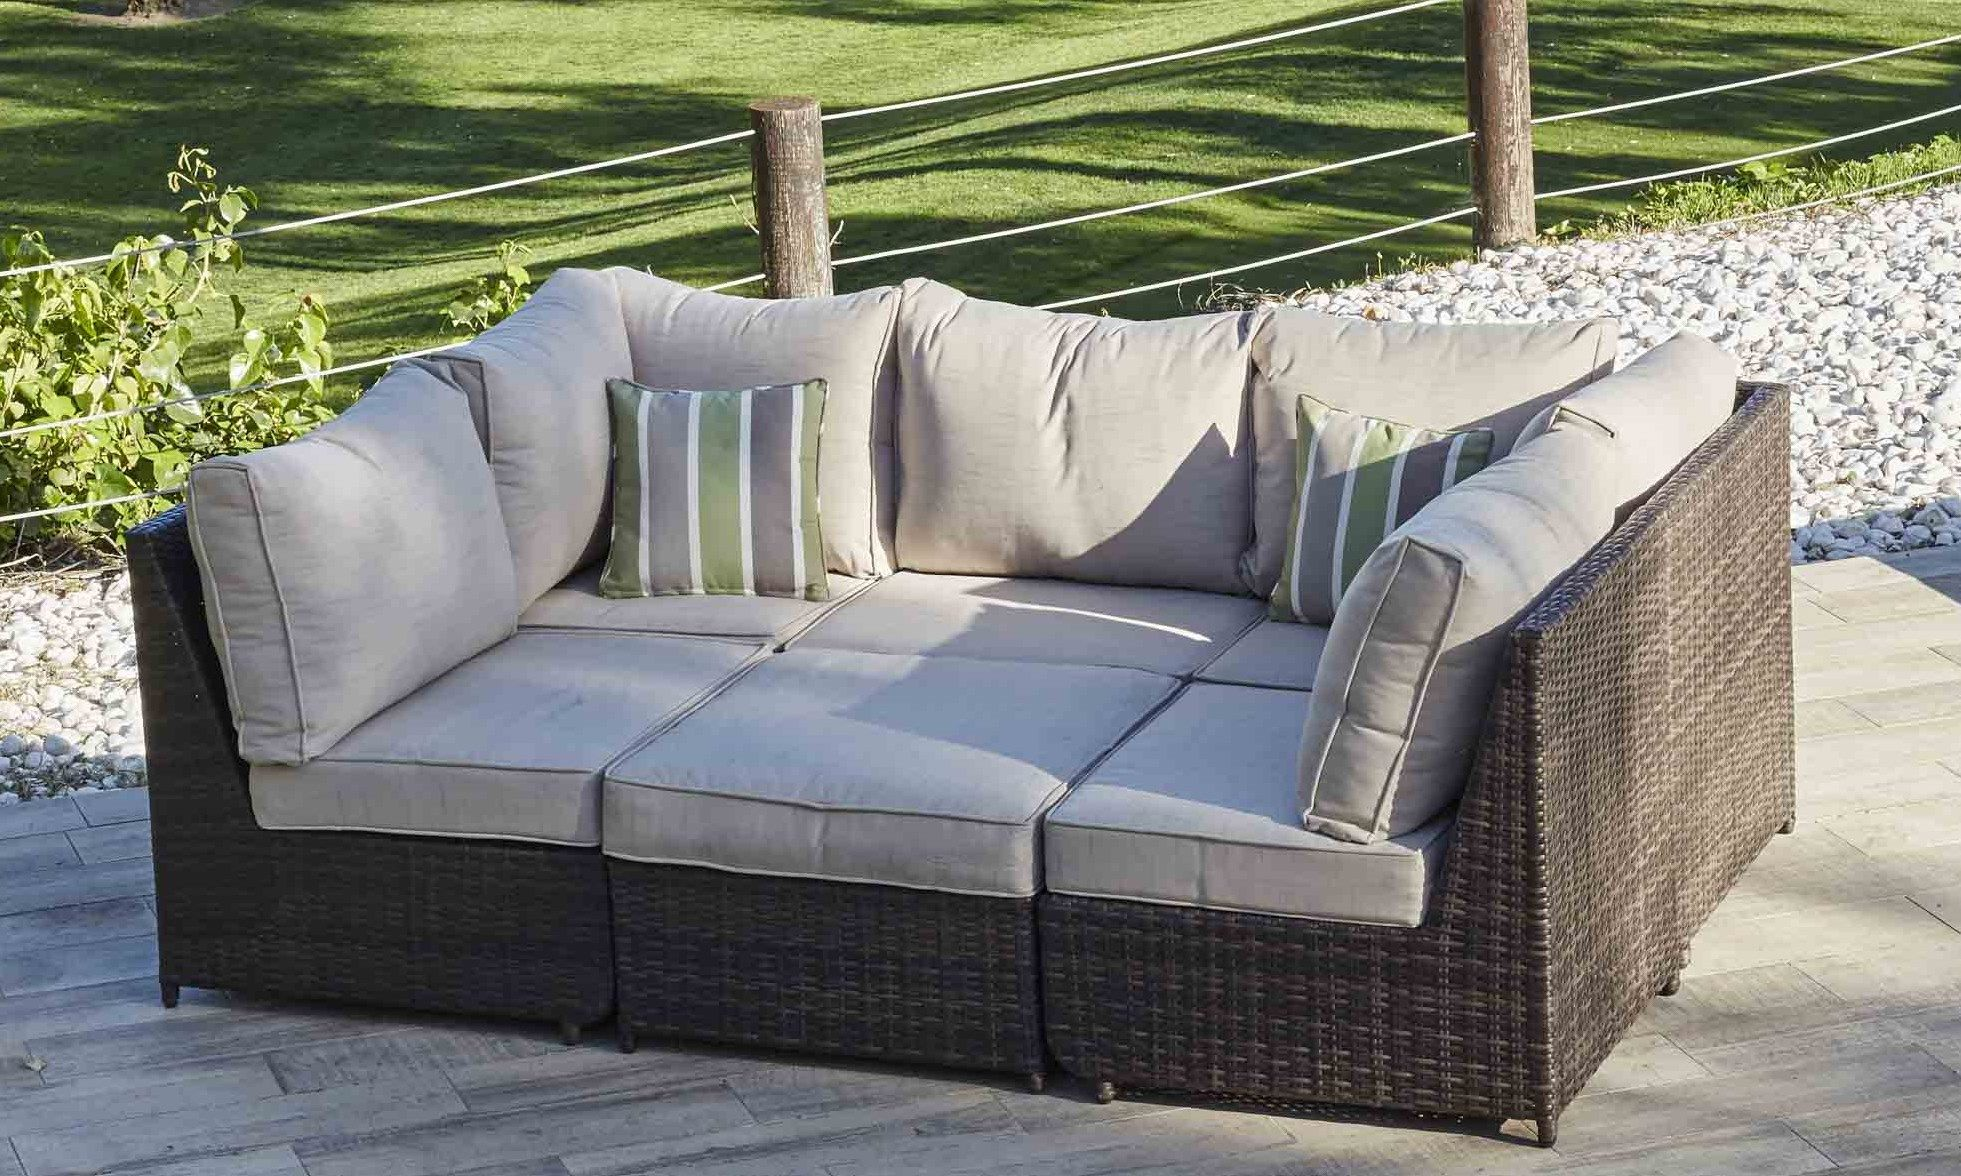 Do Your House Goals Include Your Garden Create The Perfect Space For Relaxing And Entertaining Wit Rattan Garden Furniture Garden Furniture Rattan Corner Sofa